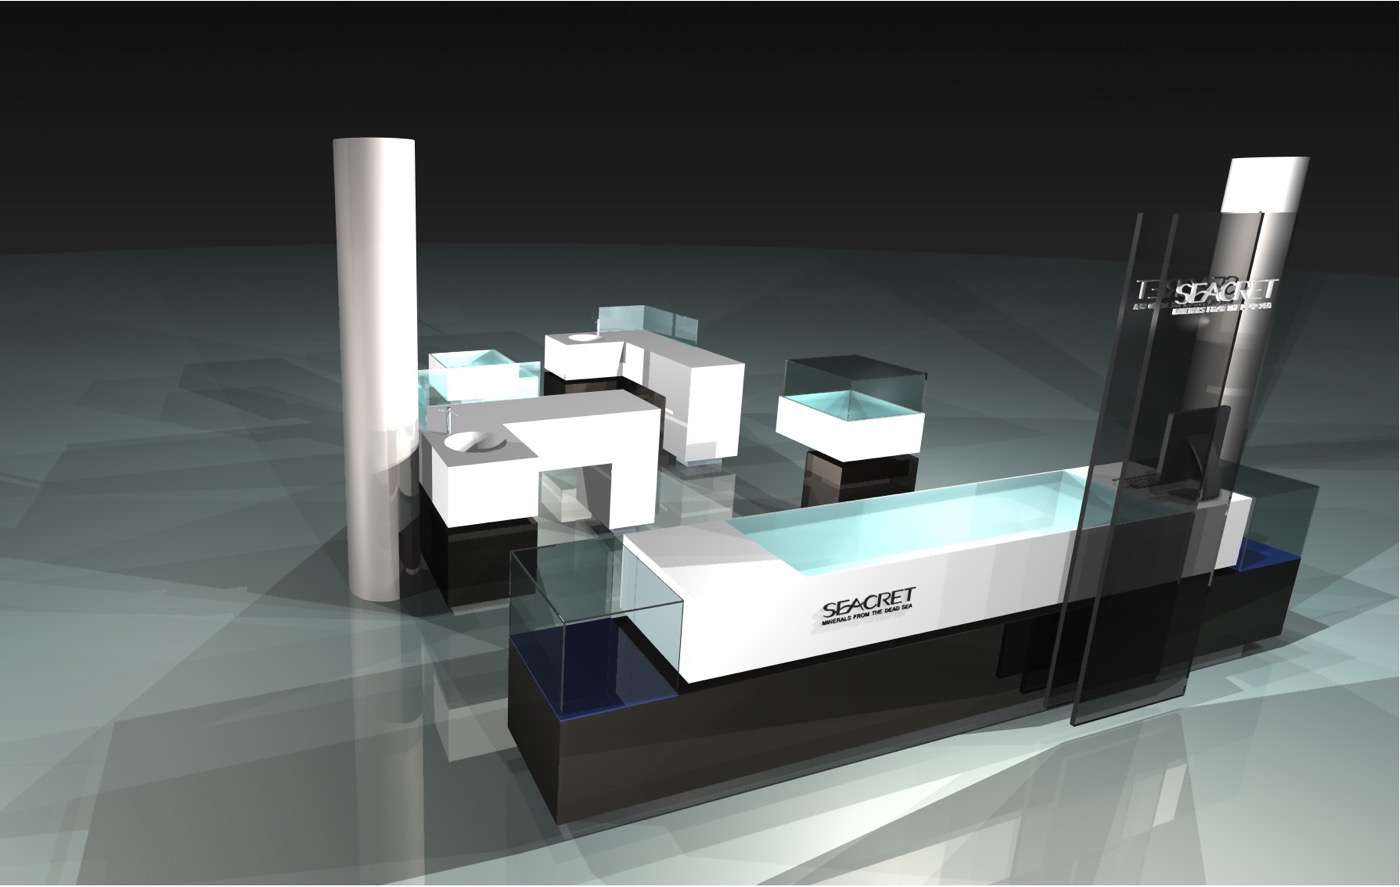 3d drawing seacret mall kiosk display units